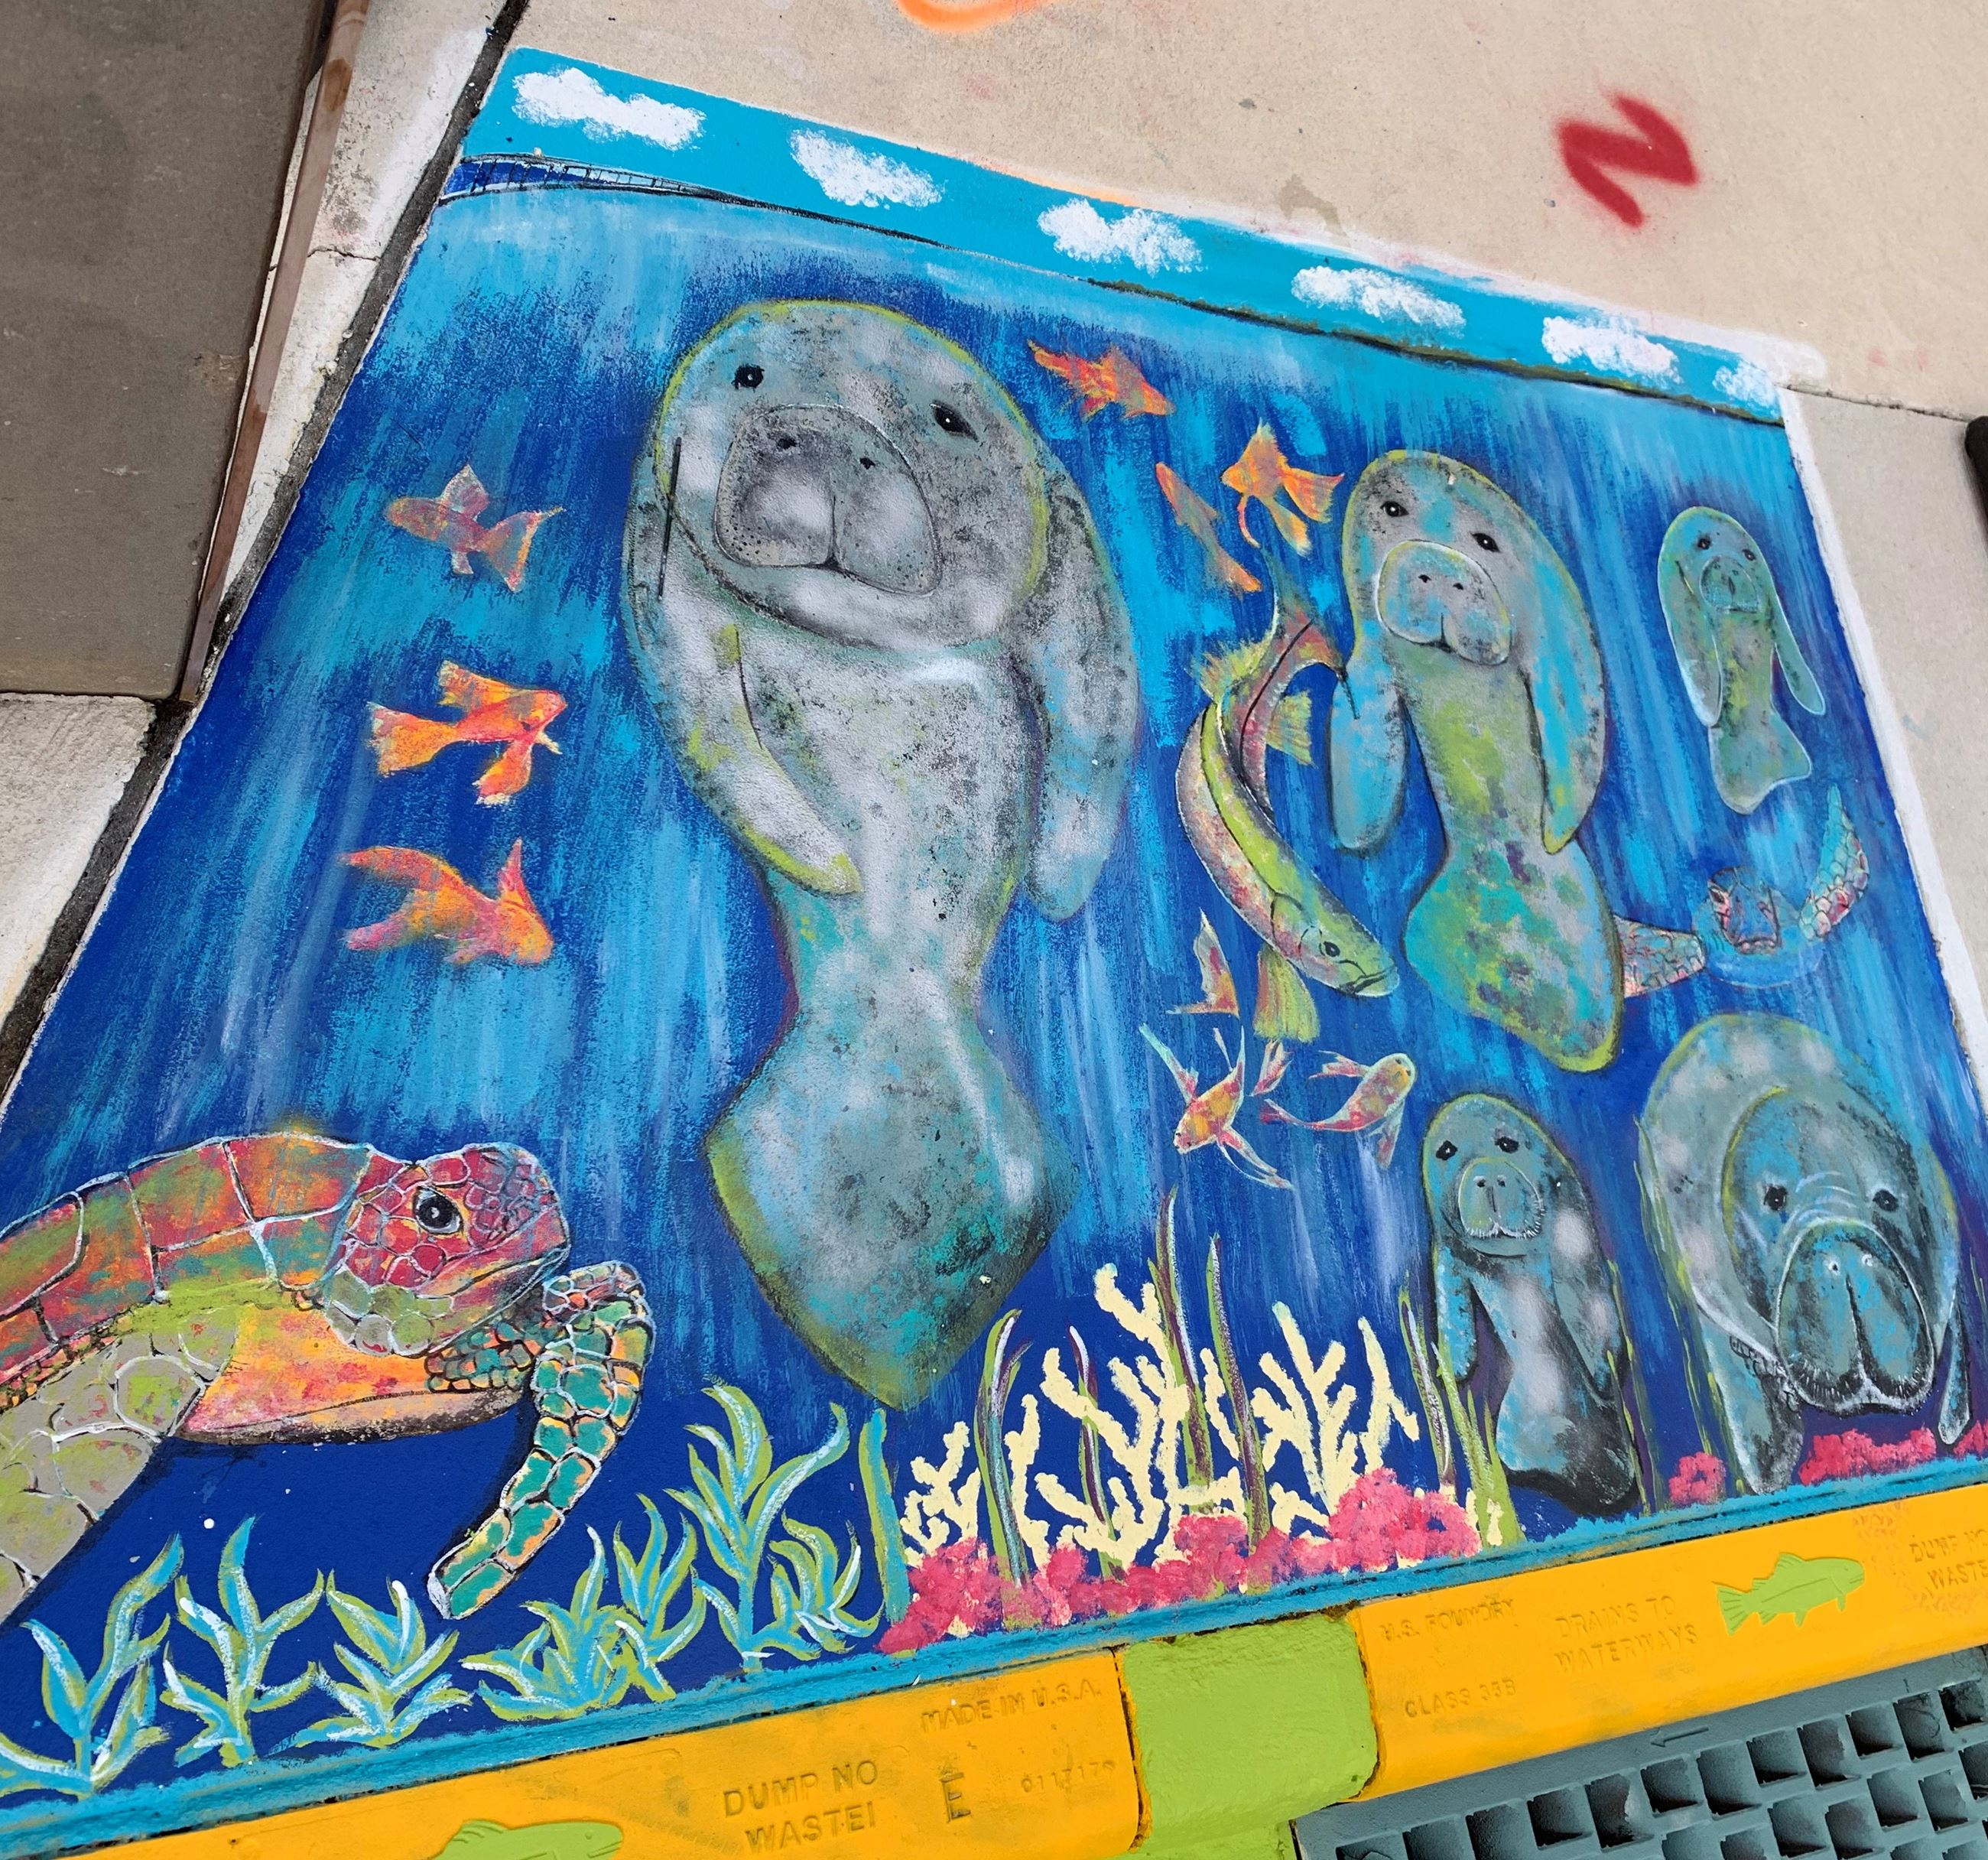 Artist Jenn Gallo's storm drain art at Florida Avenue and Factory St. as part of the storm drain